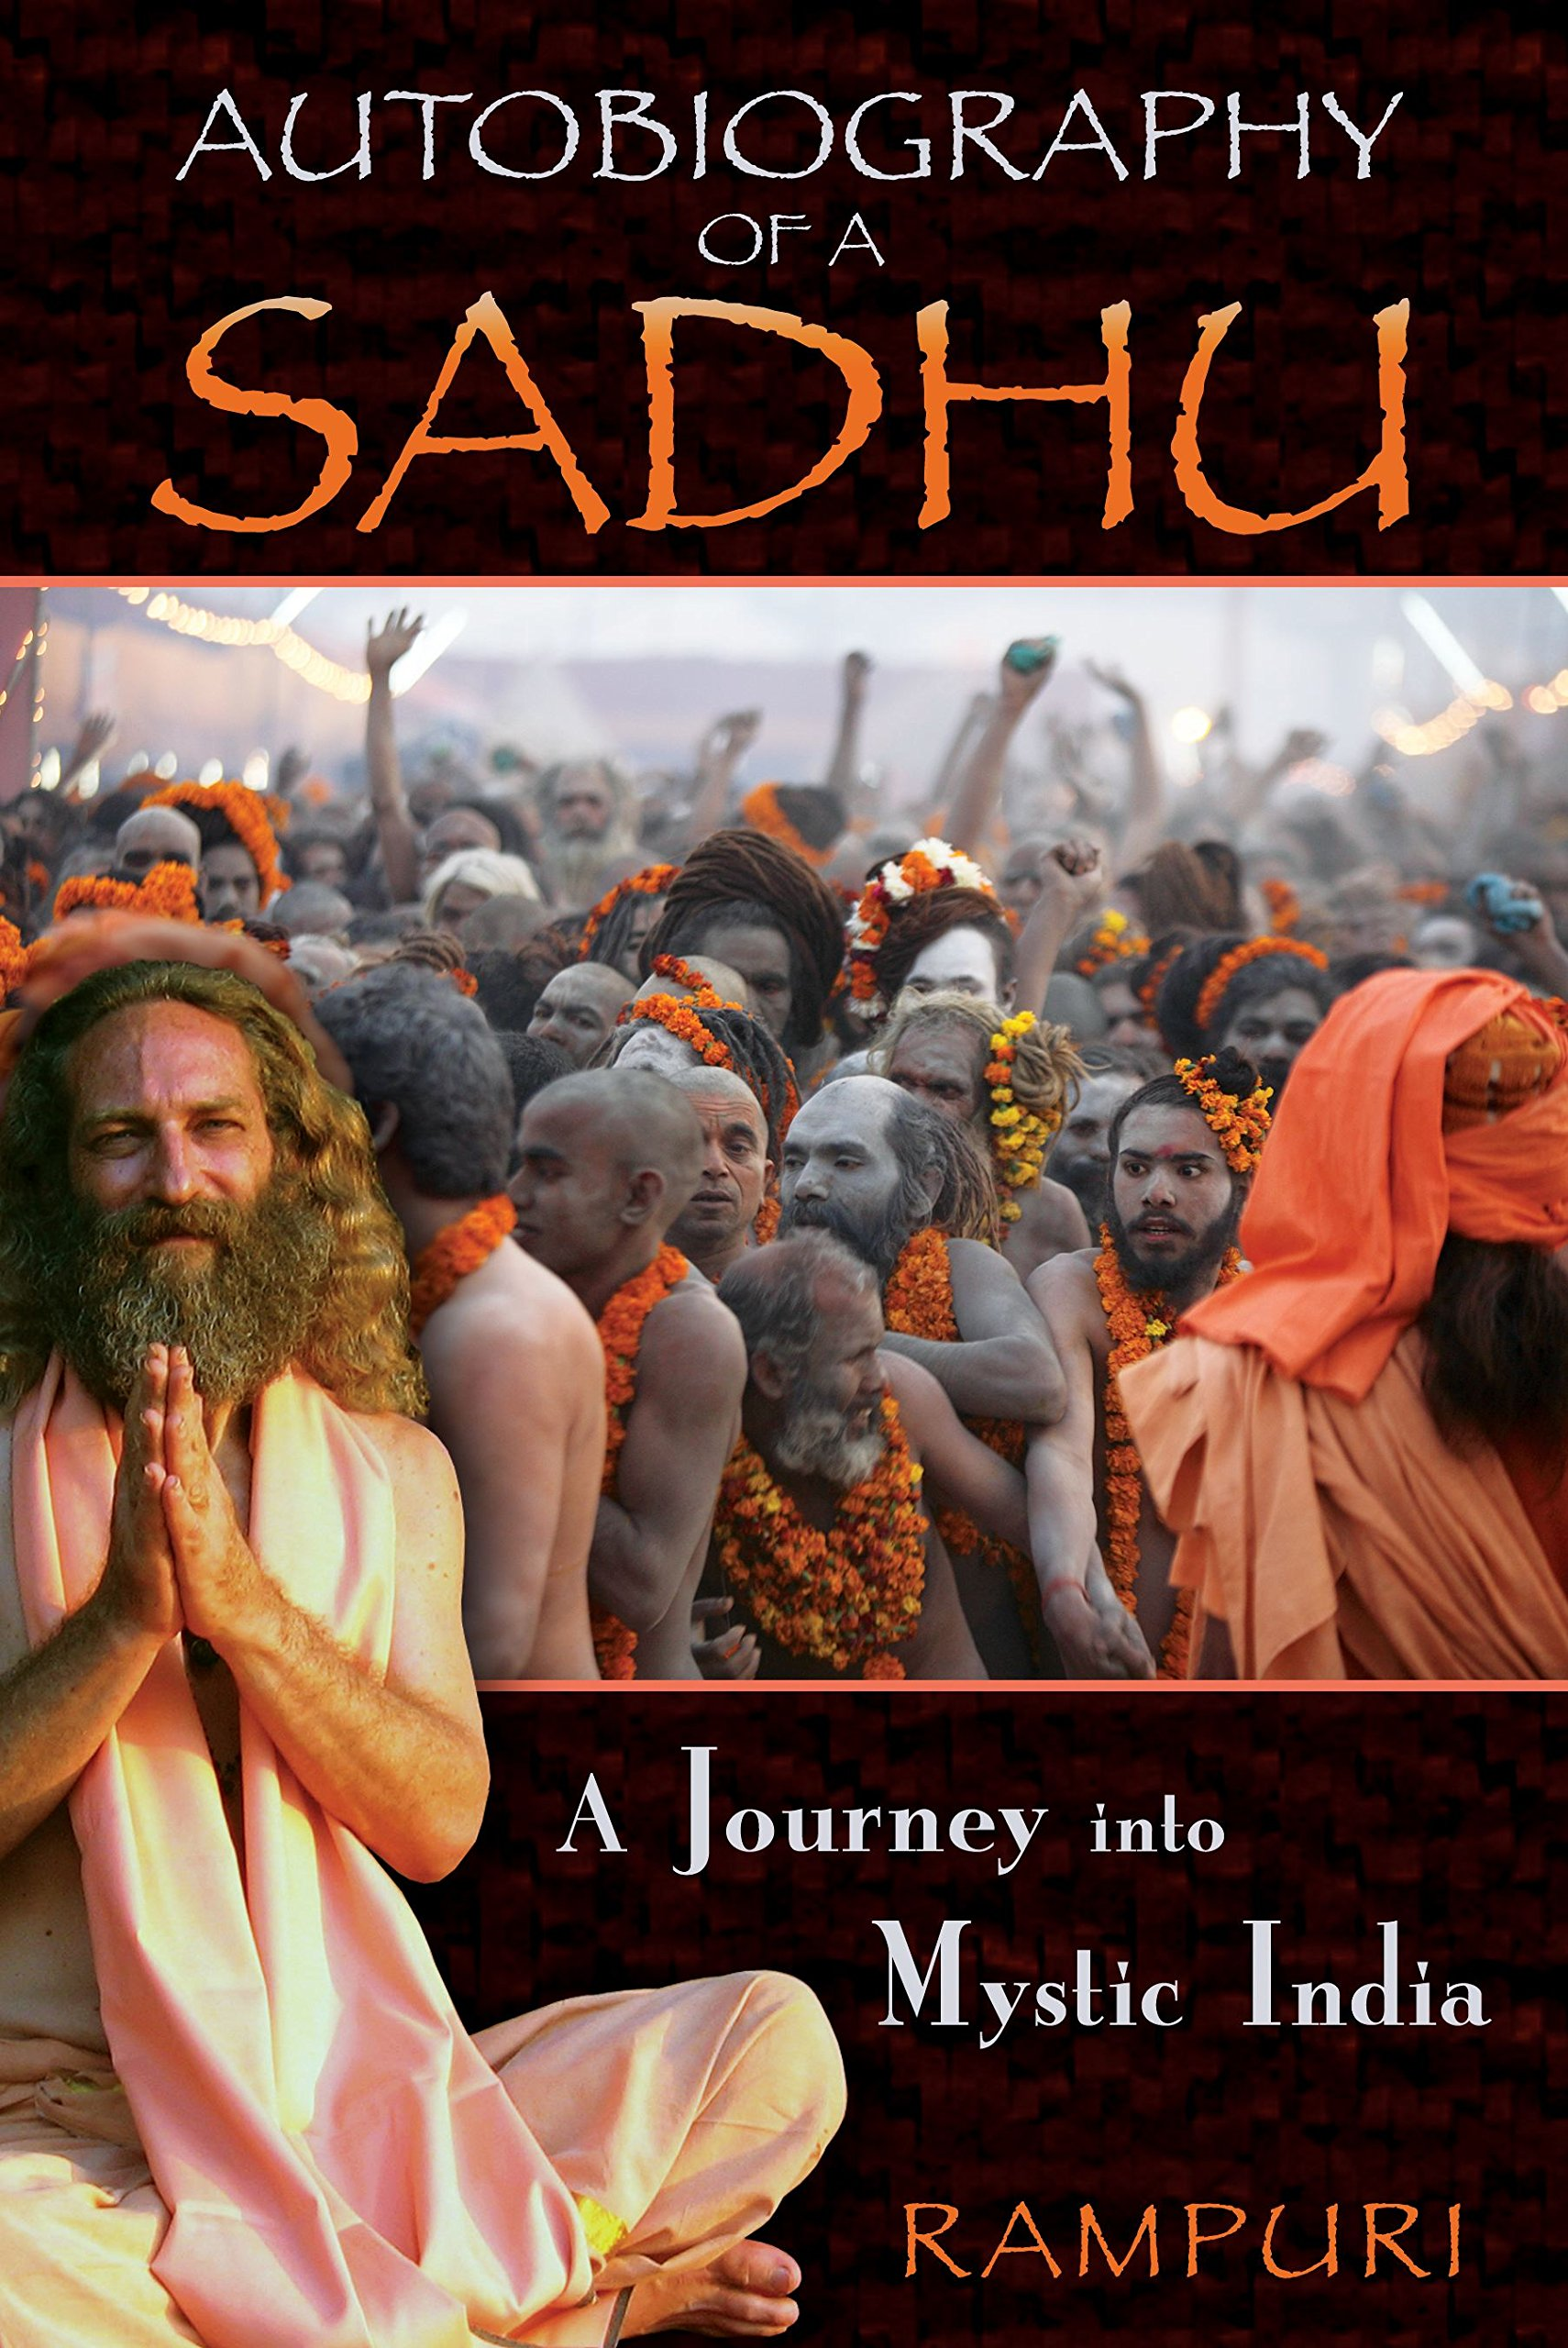 Autobiography of a Sadhu : A Journey into Mystic India by Rampuri - Paperback